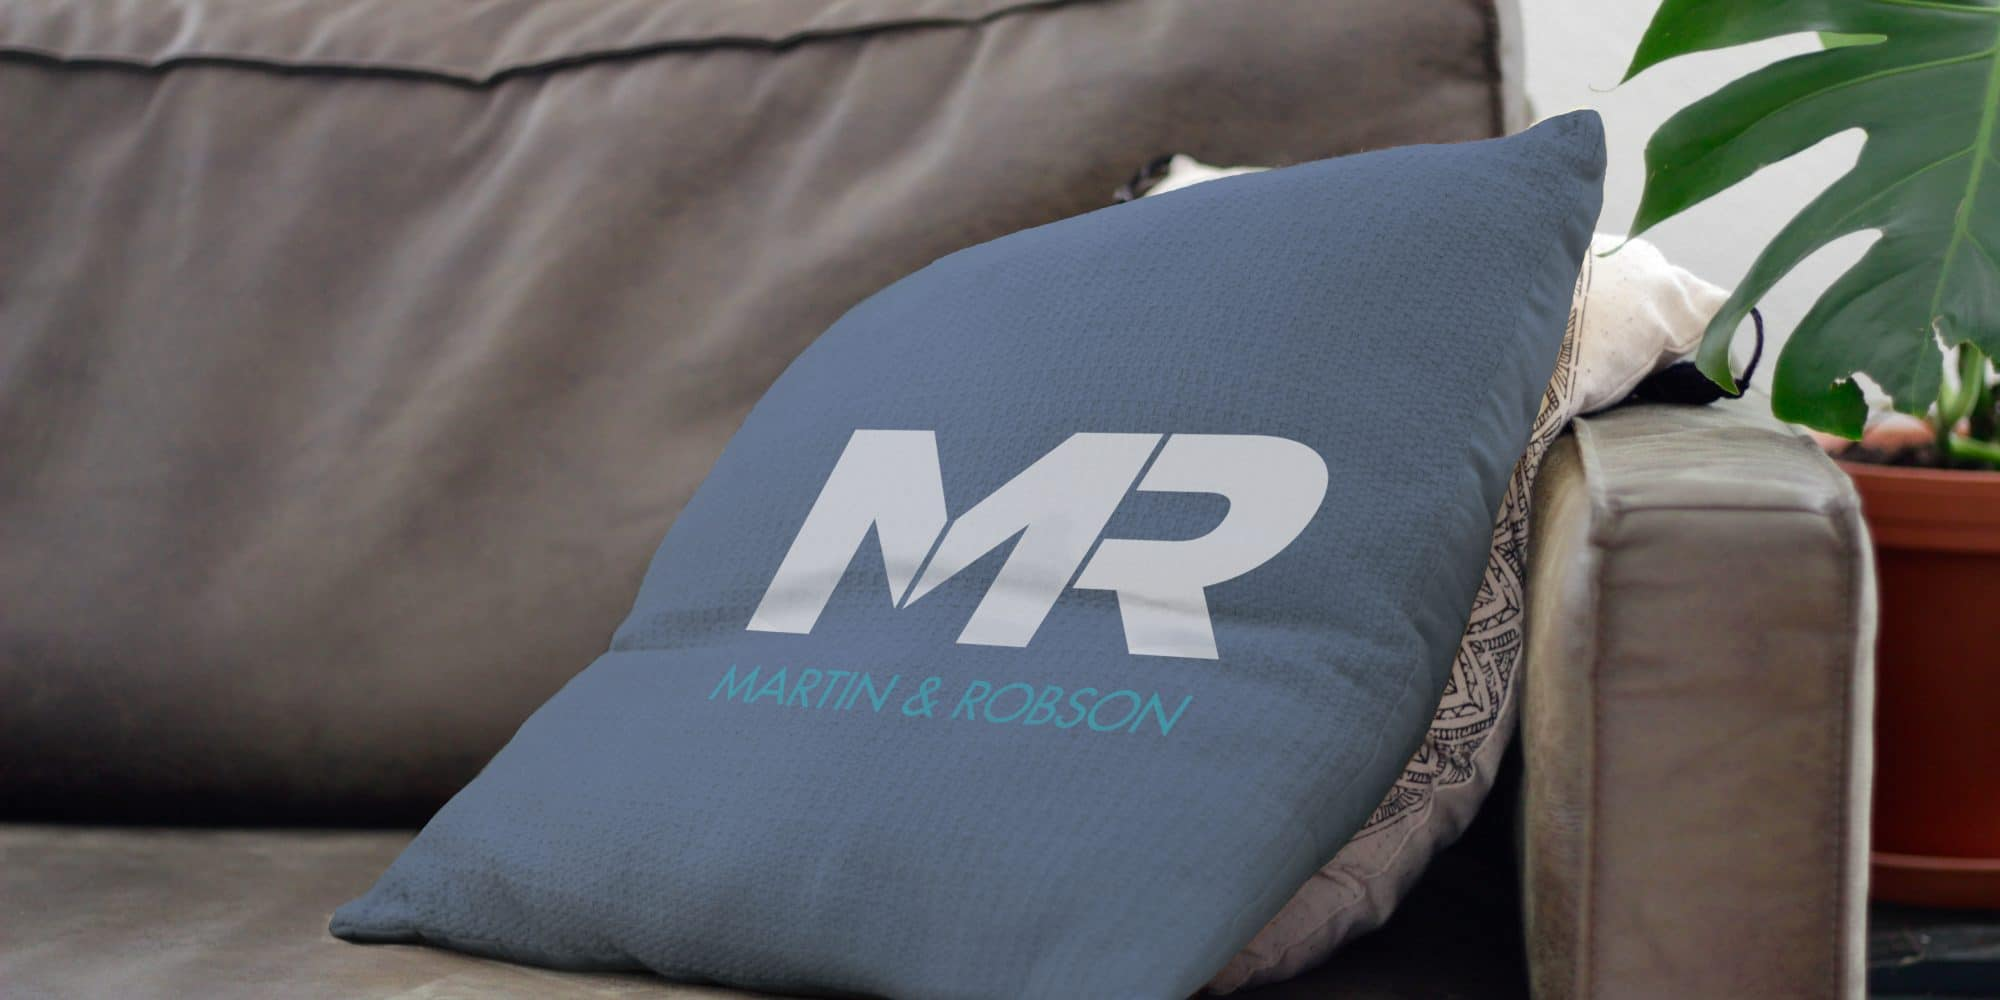 Martin and Robson logo on pillow